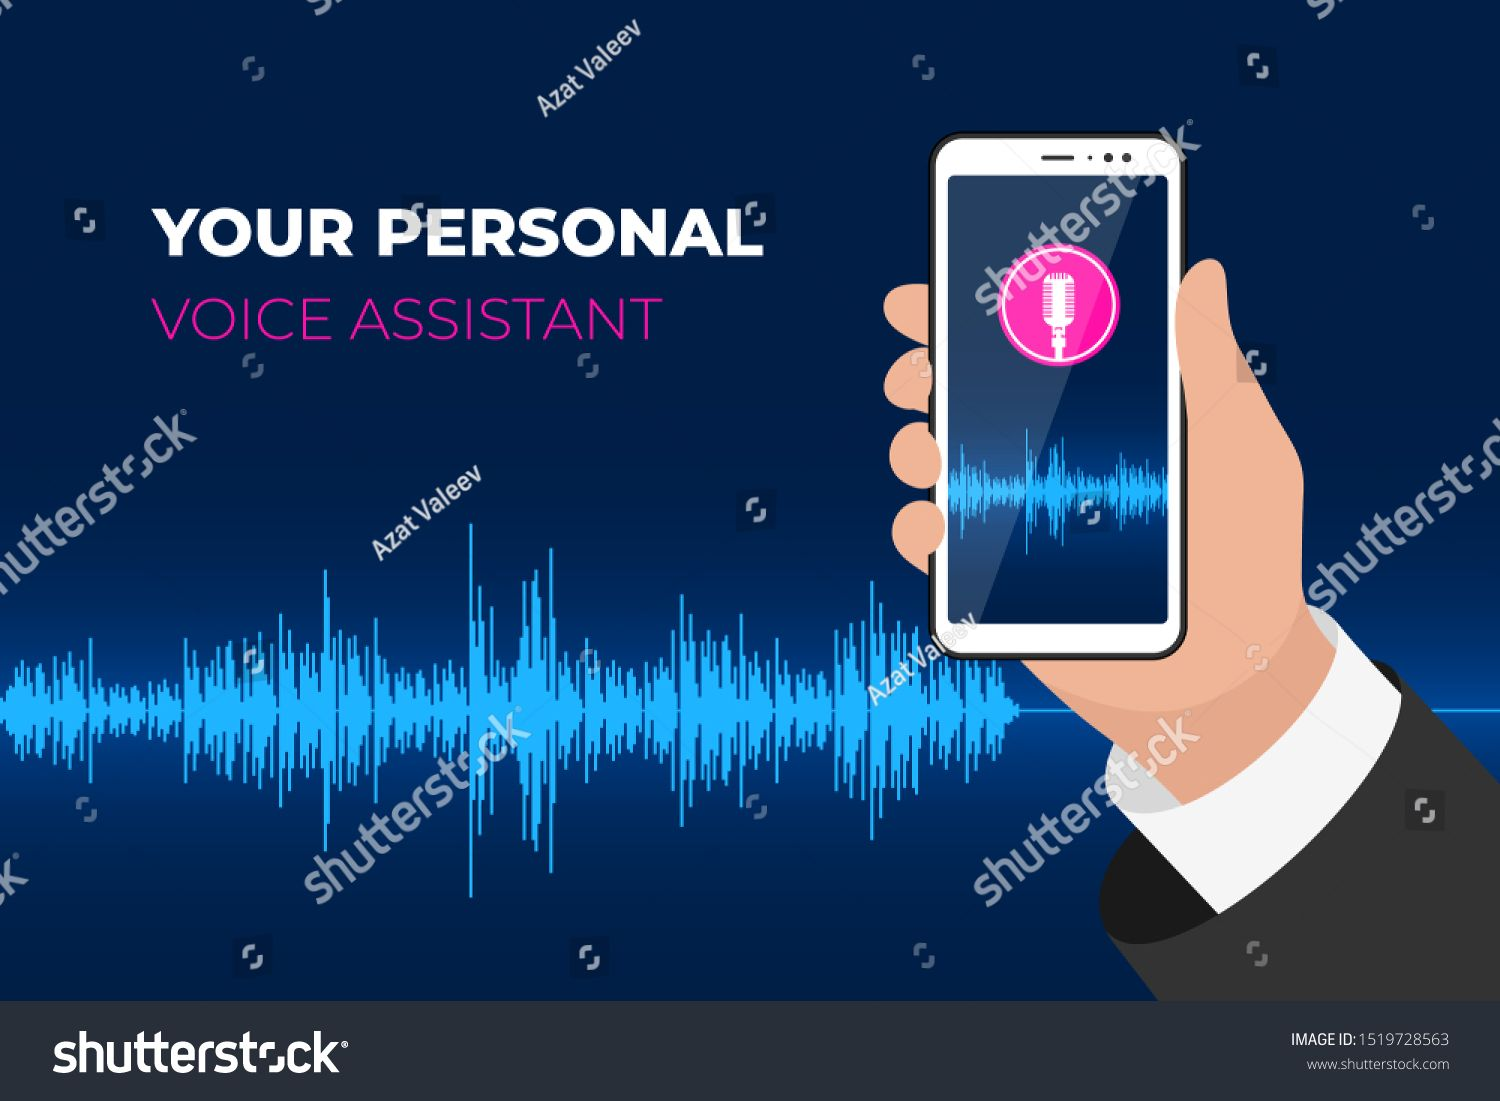 Personal Assistant And Voice Recognition Mobile App Hand Holding Smartphone With Microphone Button On Scr Intelligent Technology Photo Editing Videos Tutorial